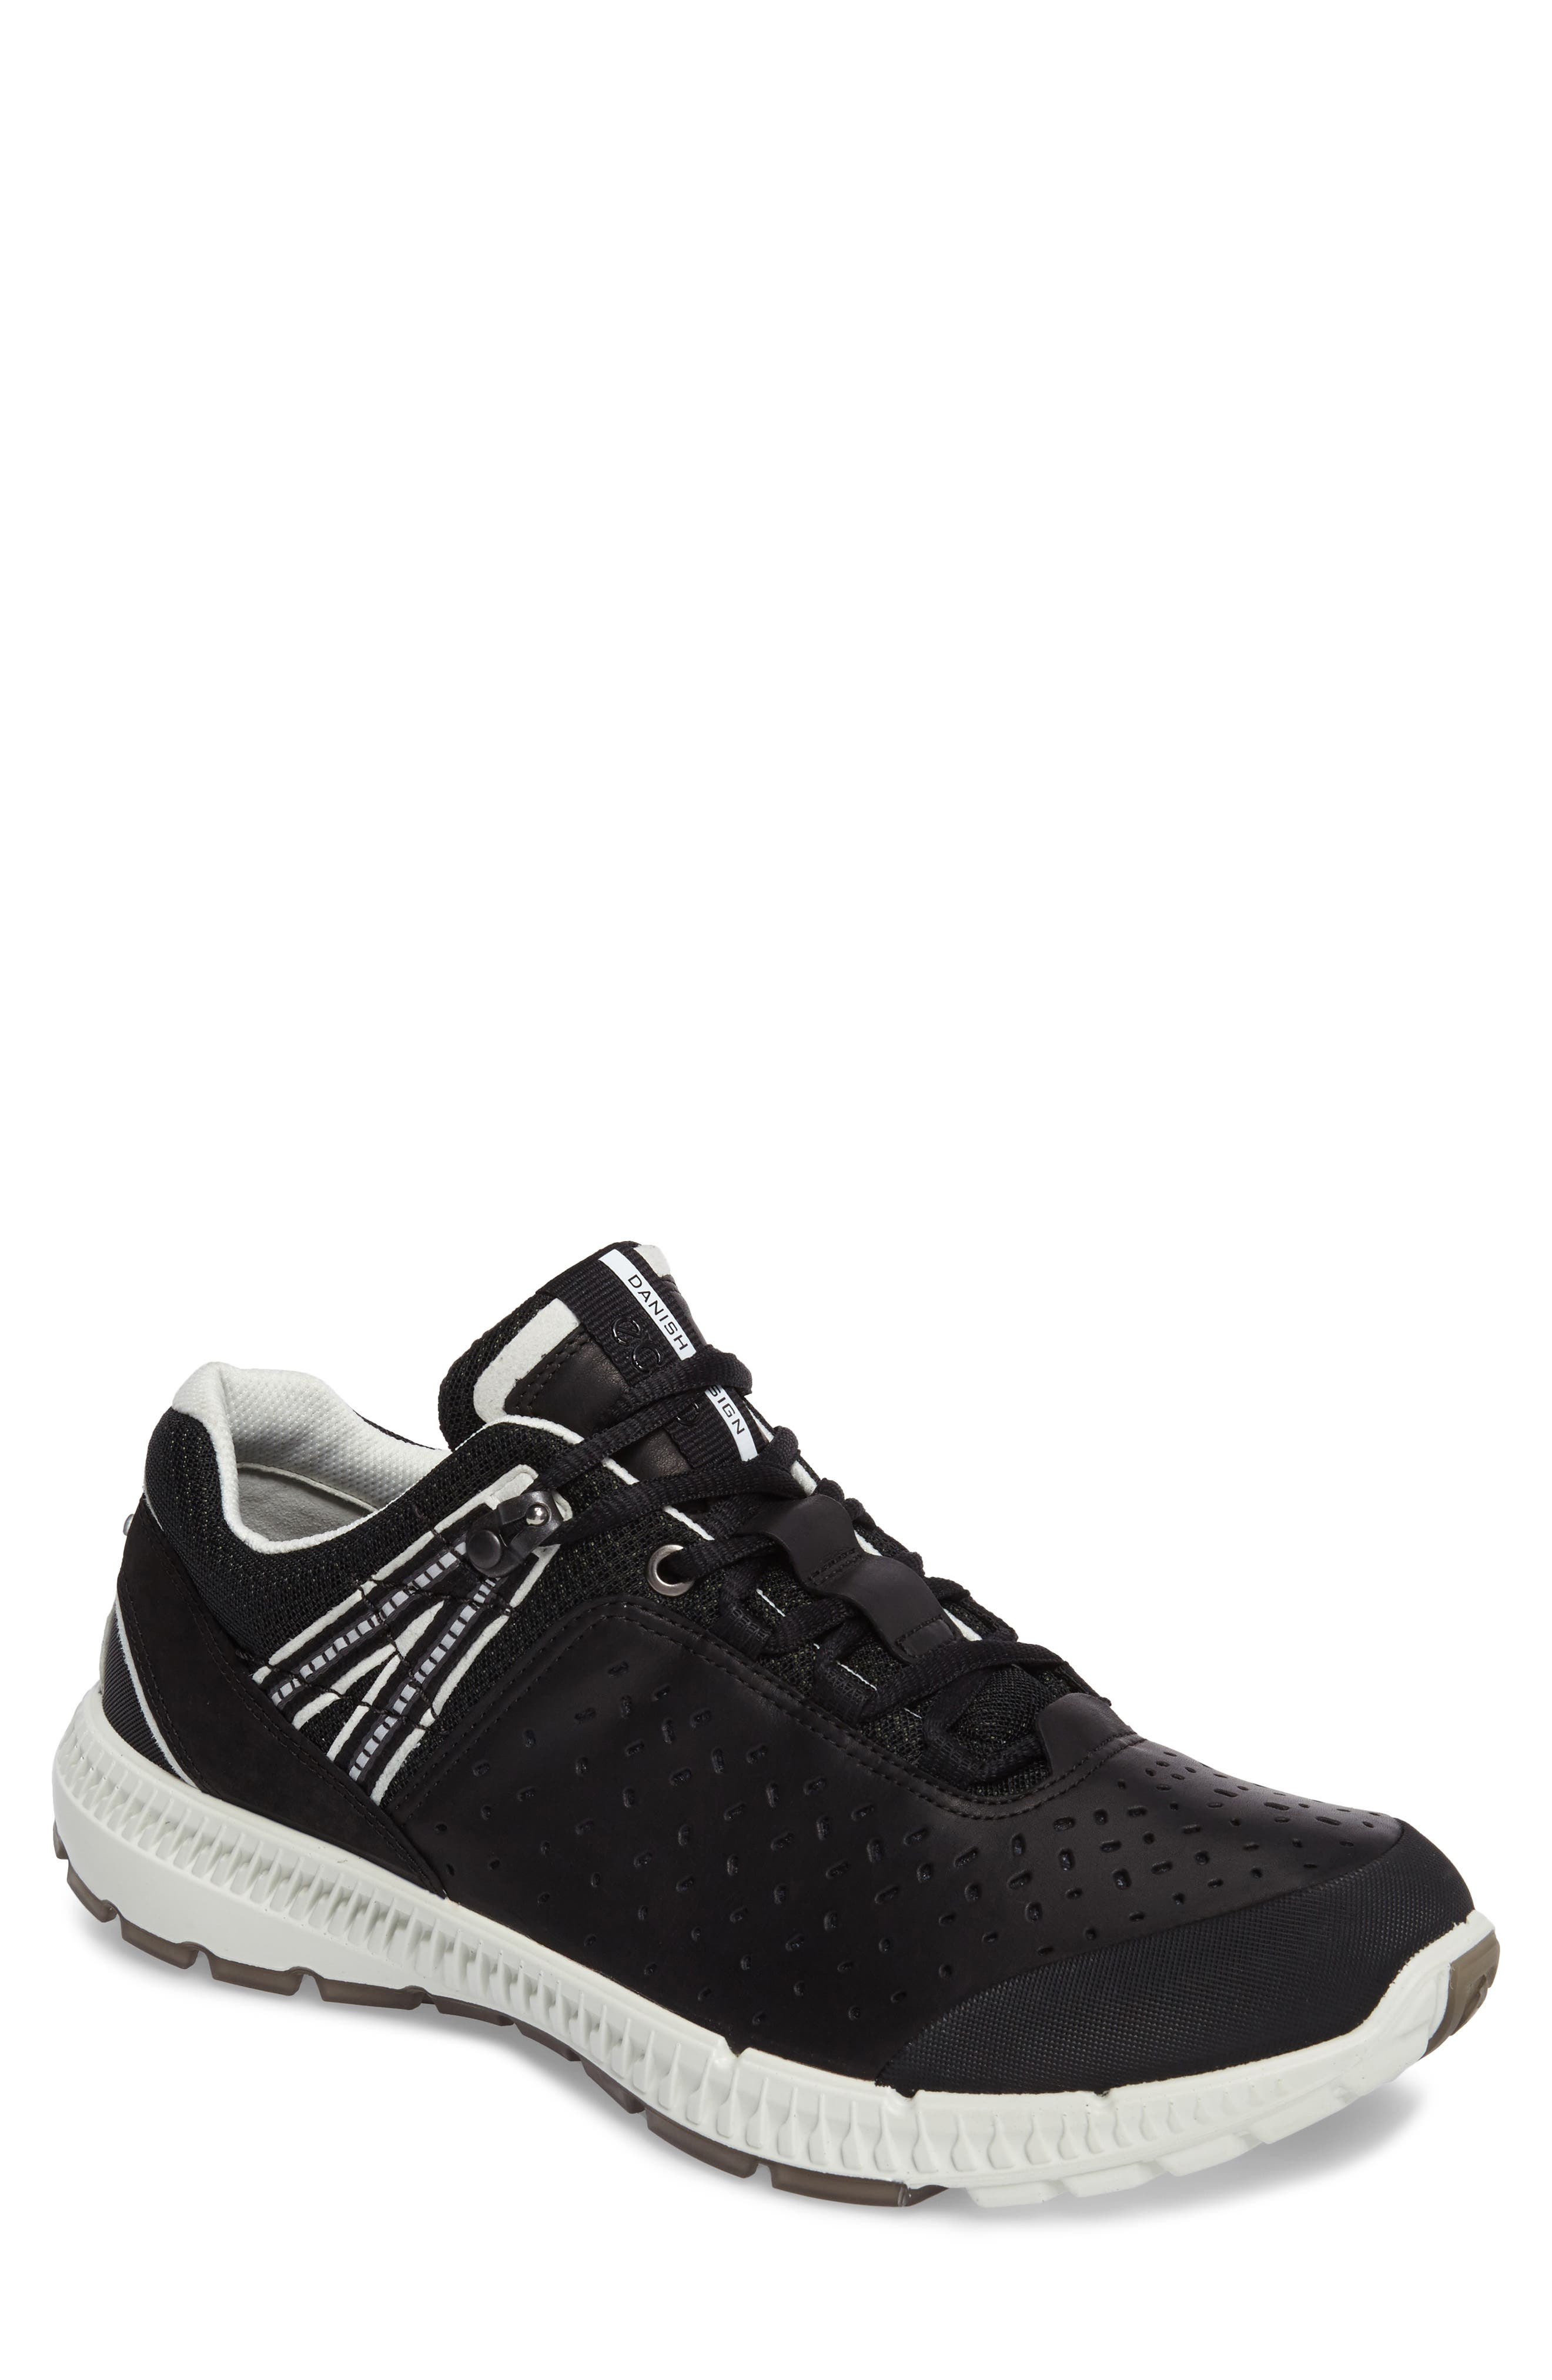 Intrinsic TR Sneaker,                         Main,                         color, 001